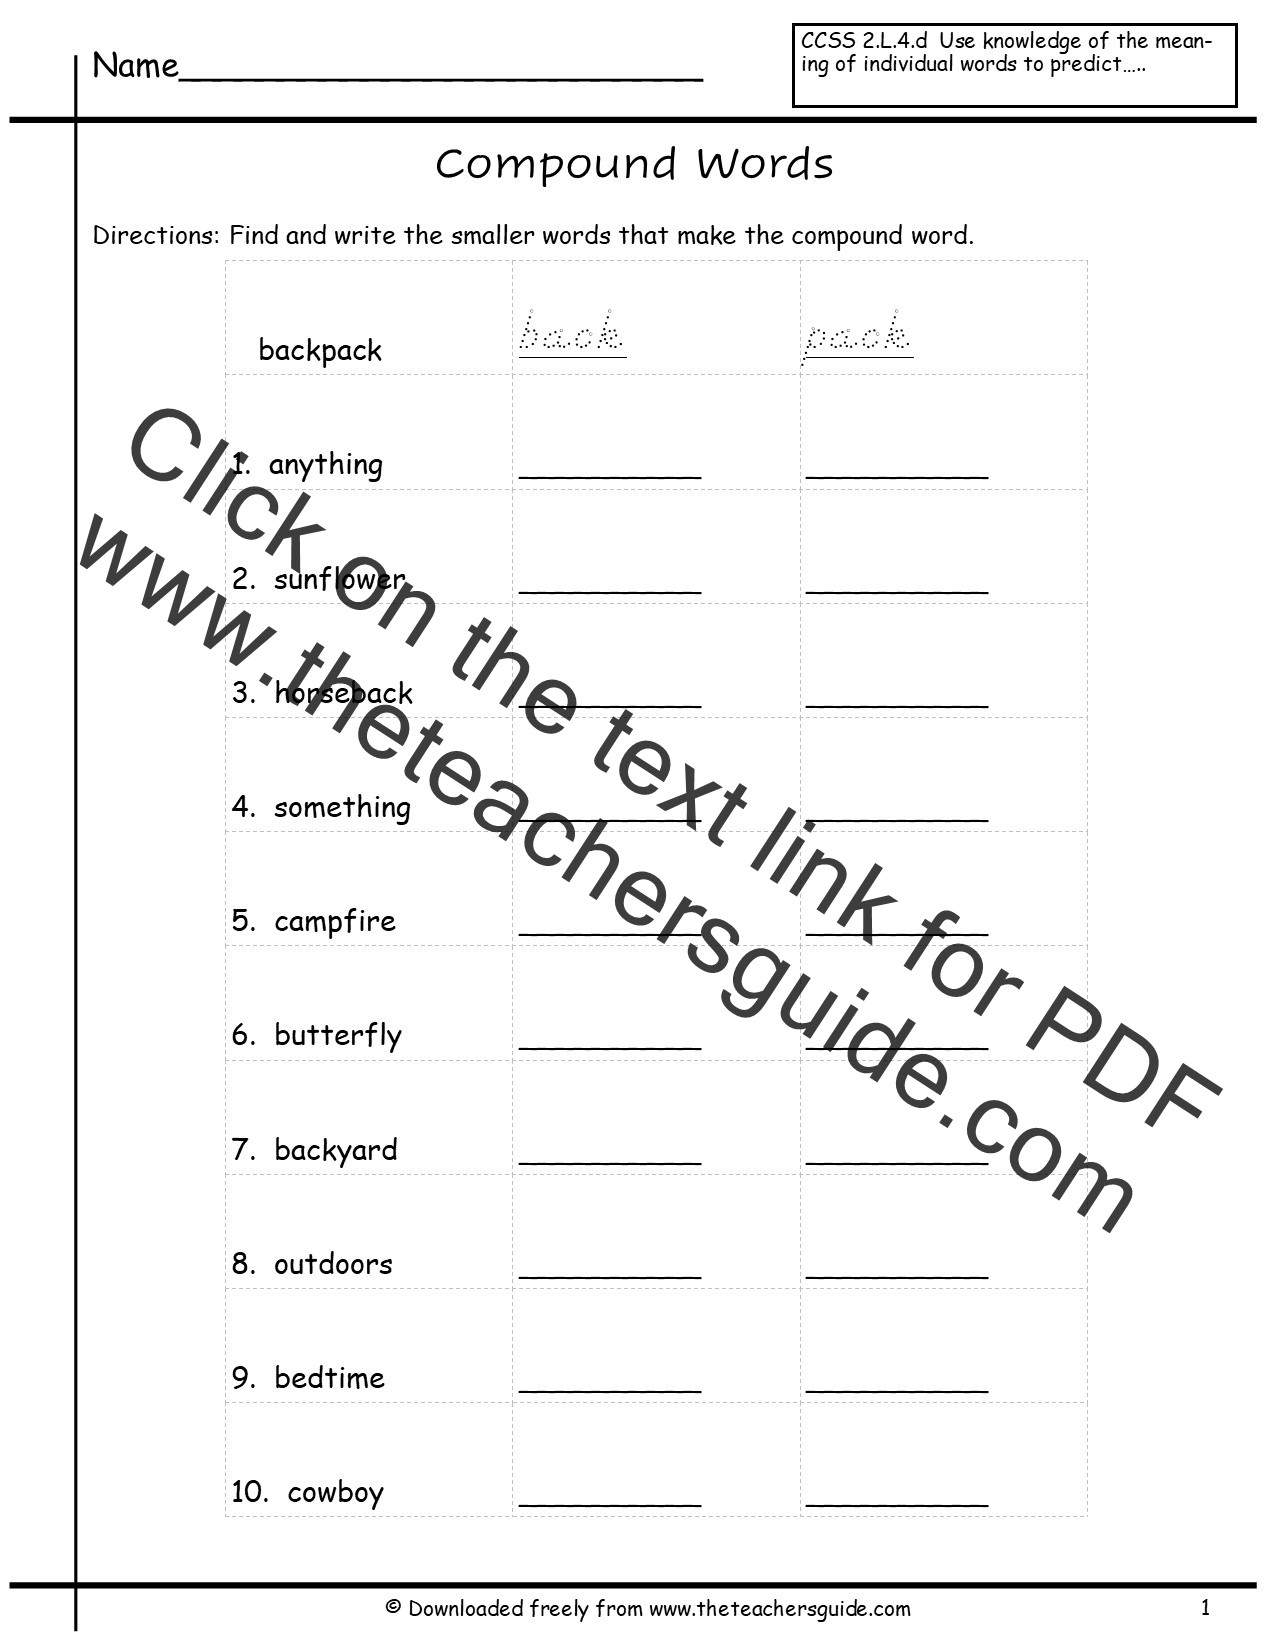 Making Predictions Worksheets 2nd Grade Wonders Second Grade Unit Four Week E Printouts